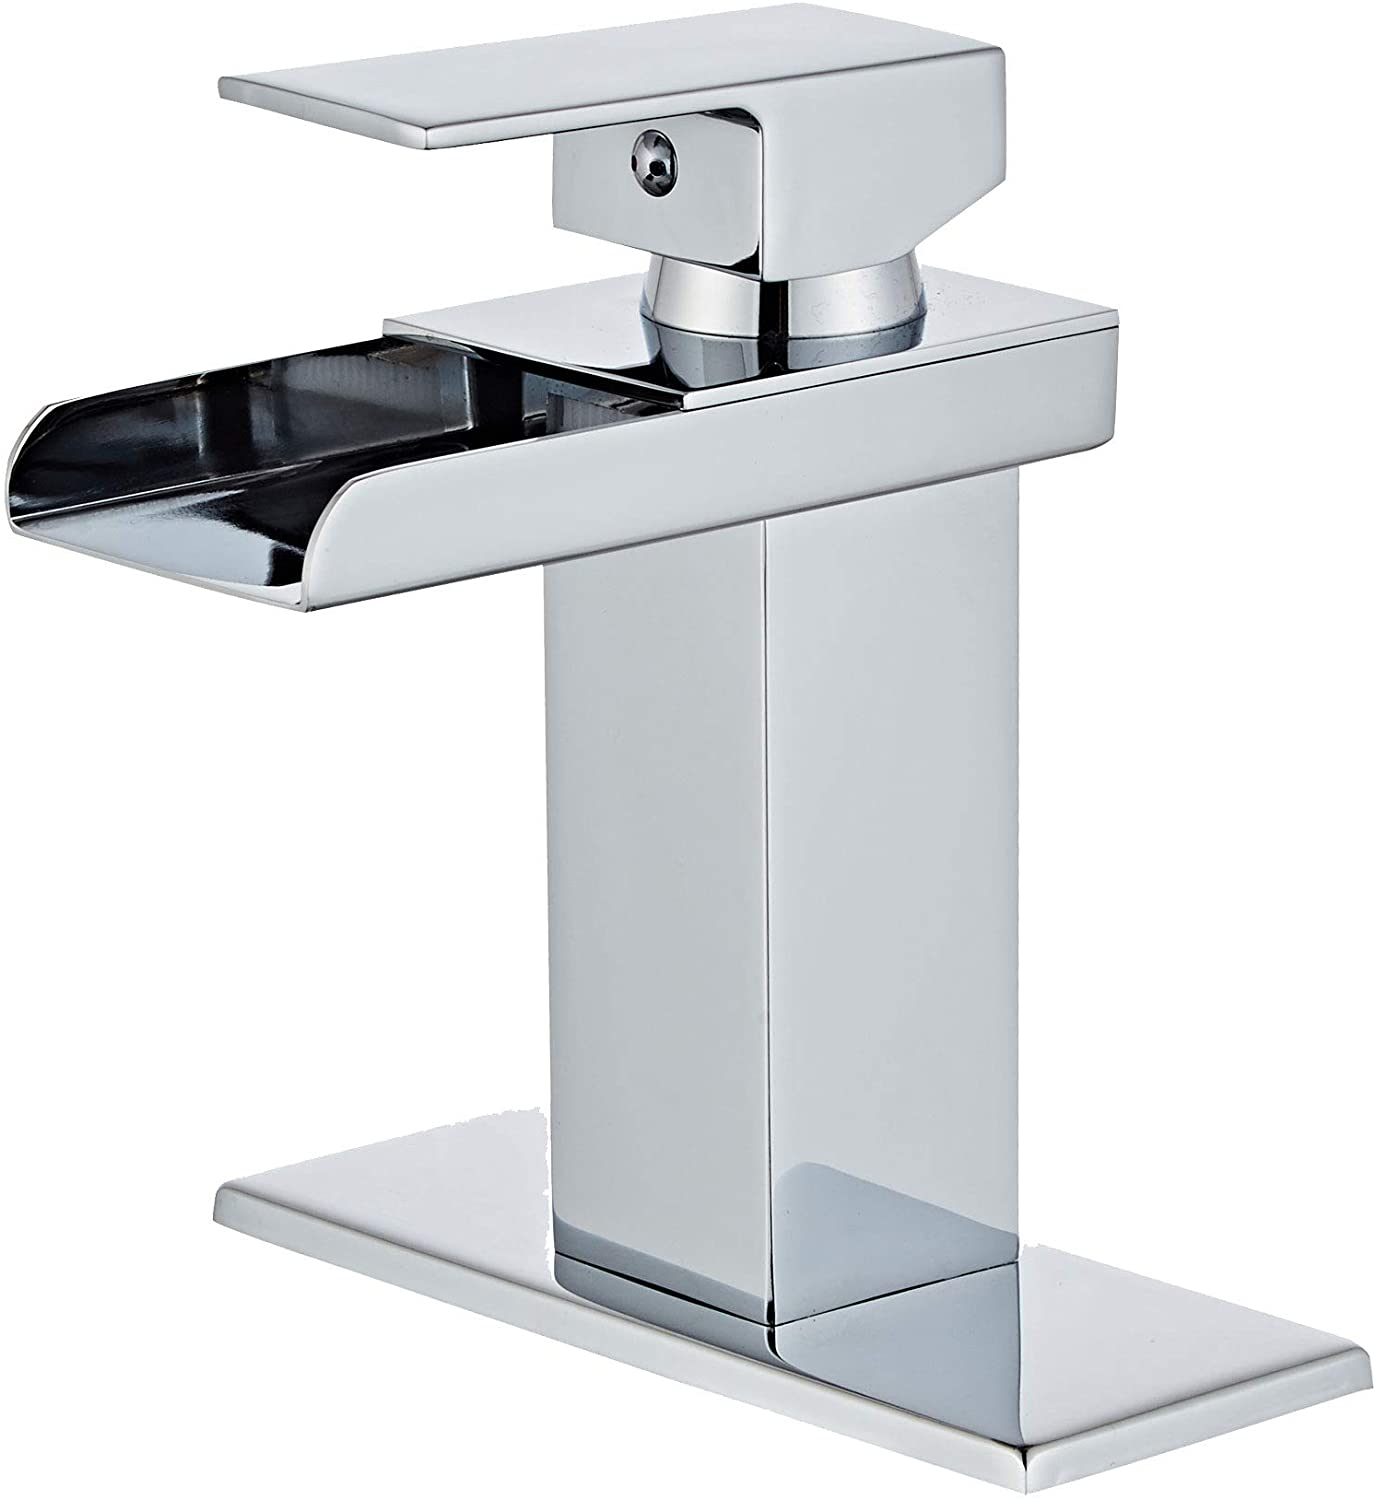 Wovier Chrome Waterfall Bathroom Sink Faucet with Supply Hose and Plate,Single Handle Single Hole Lavatory Faucet,Basin Mixer Tap Commercial